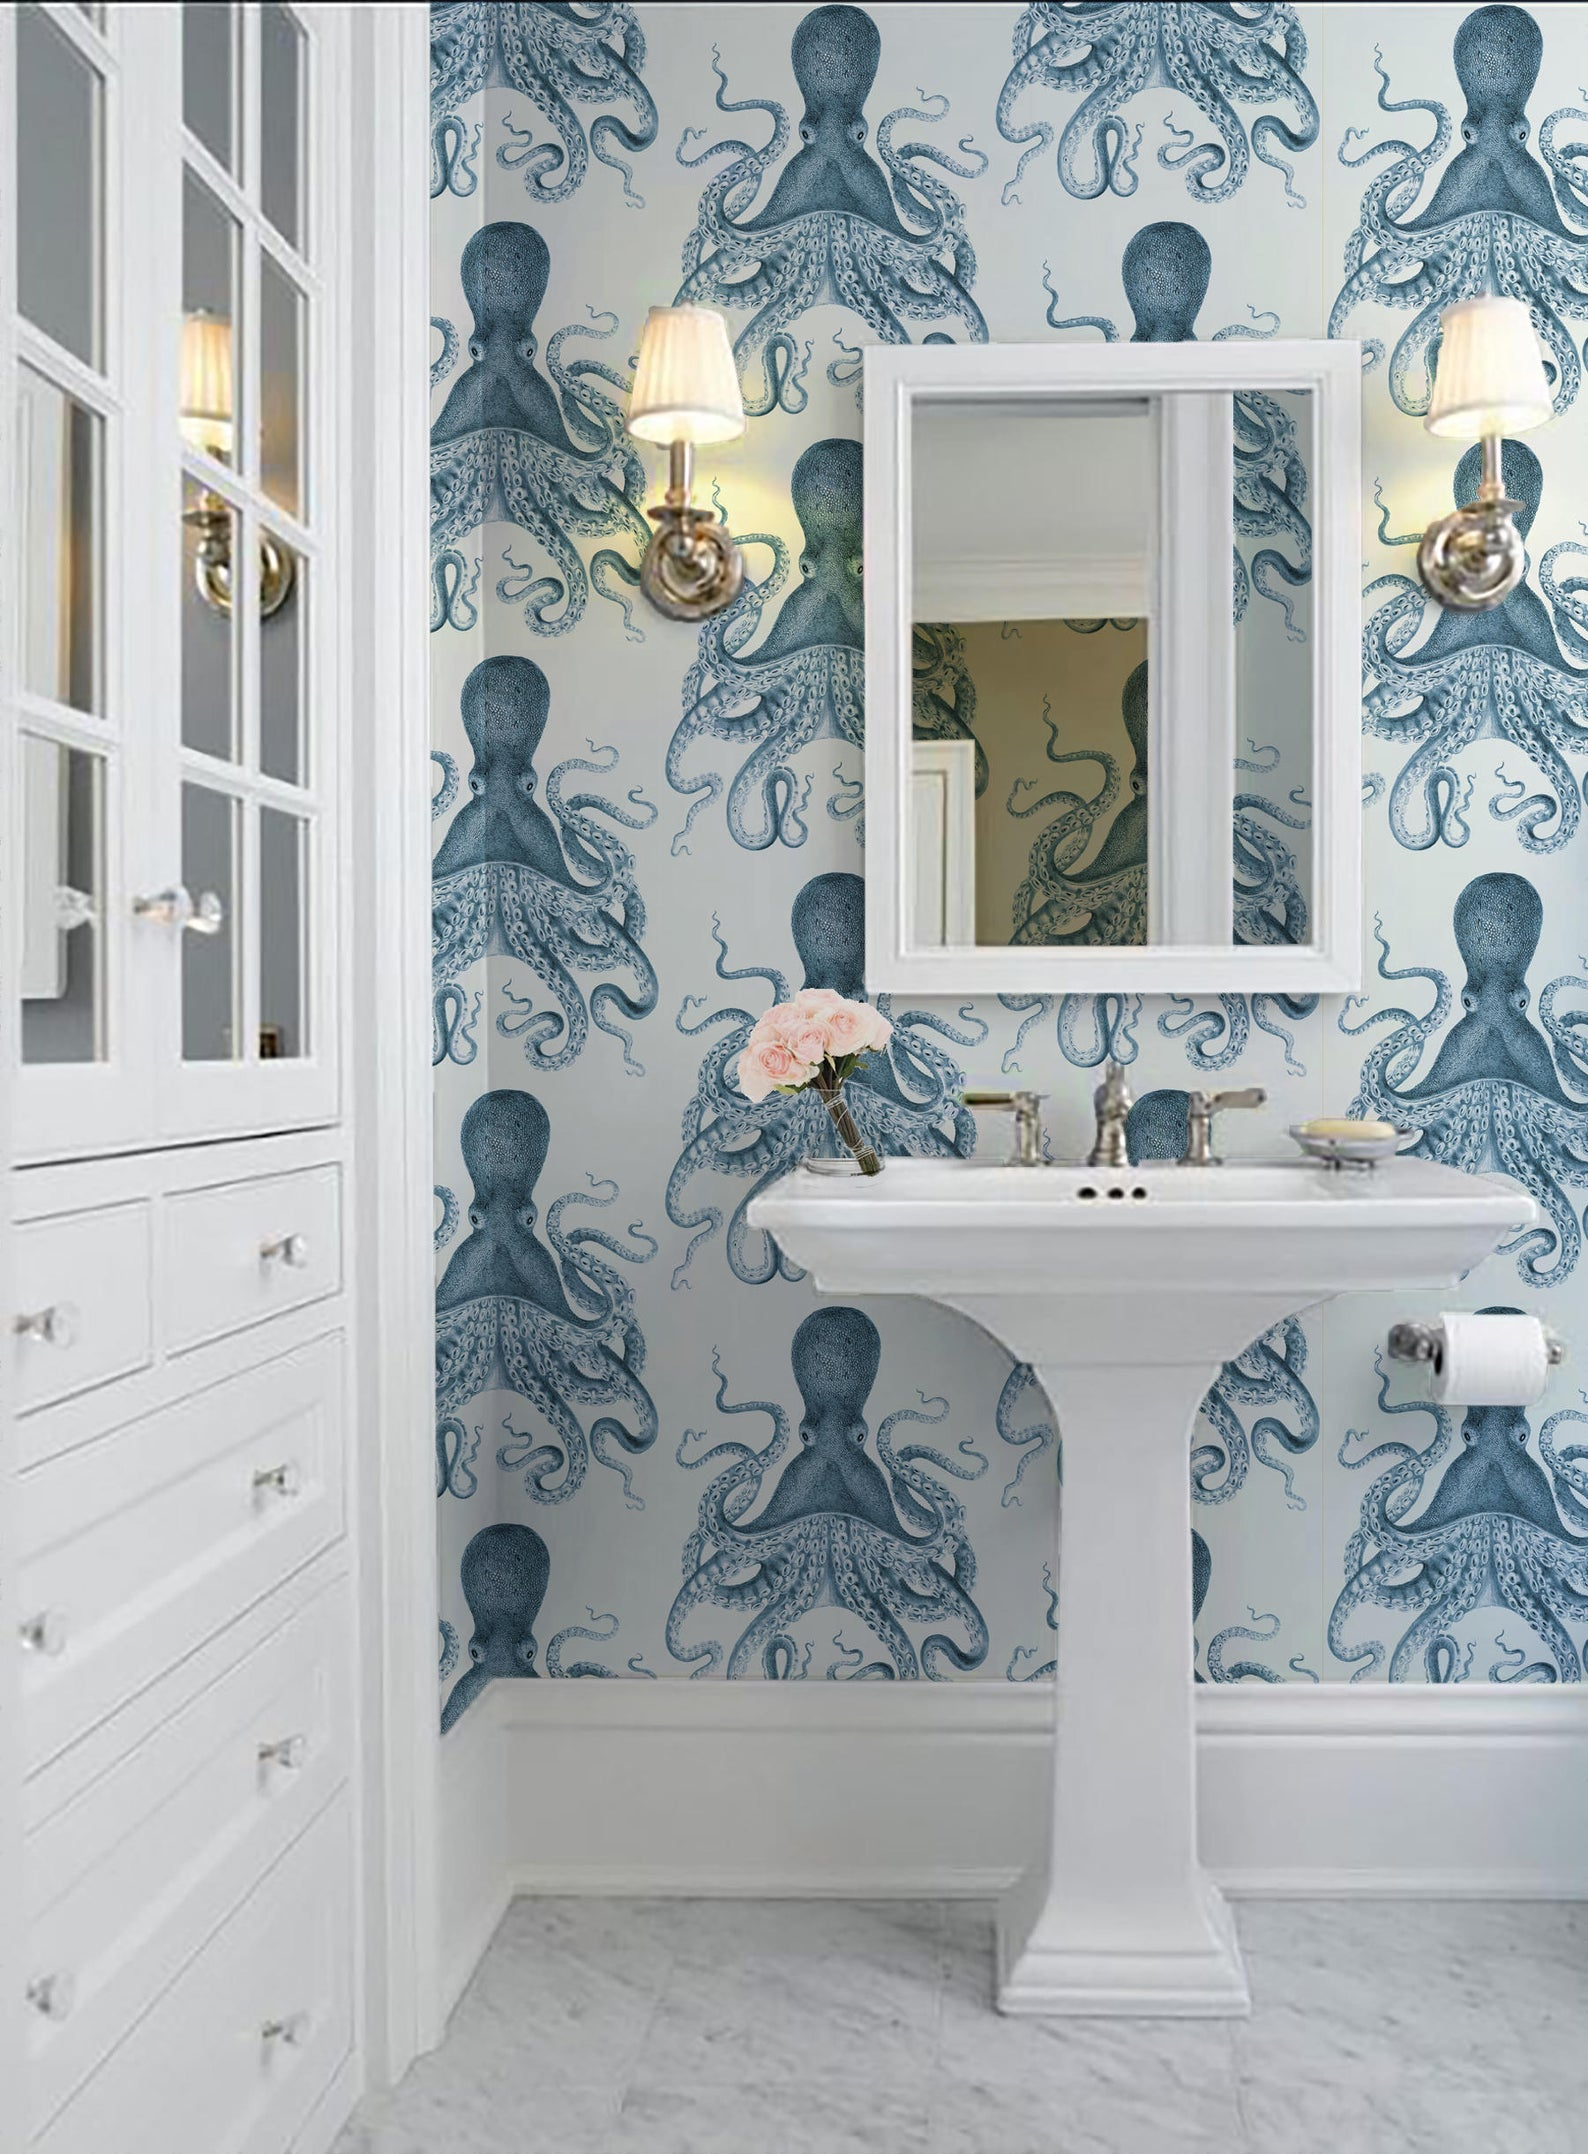 Octopus removable wallpaper from paperie on etsy